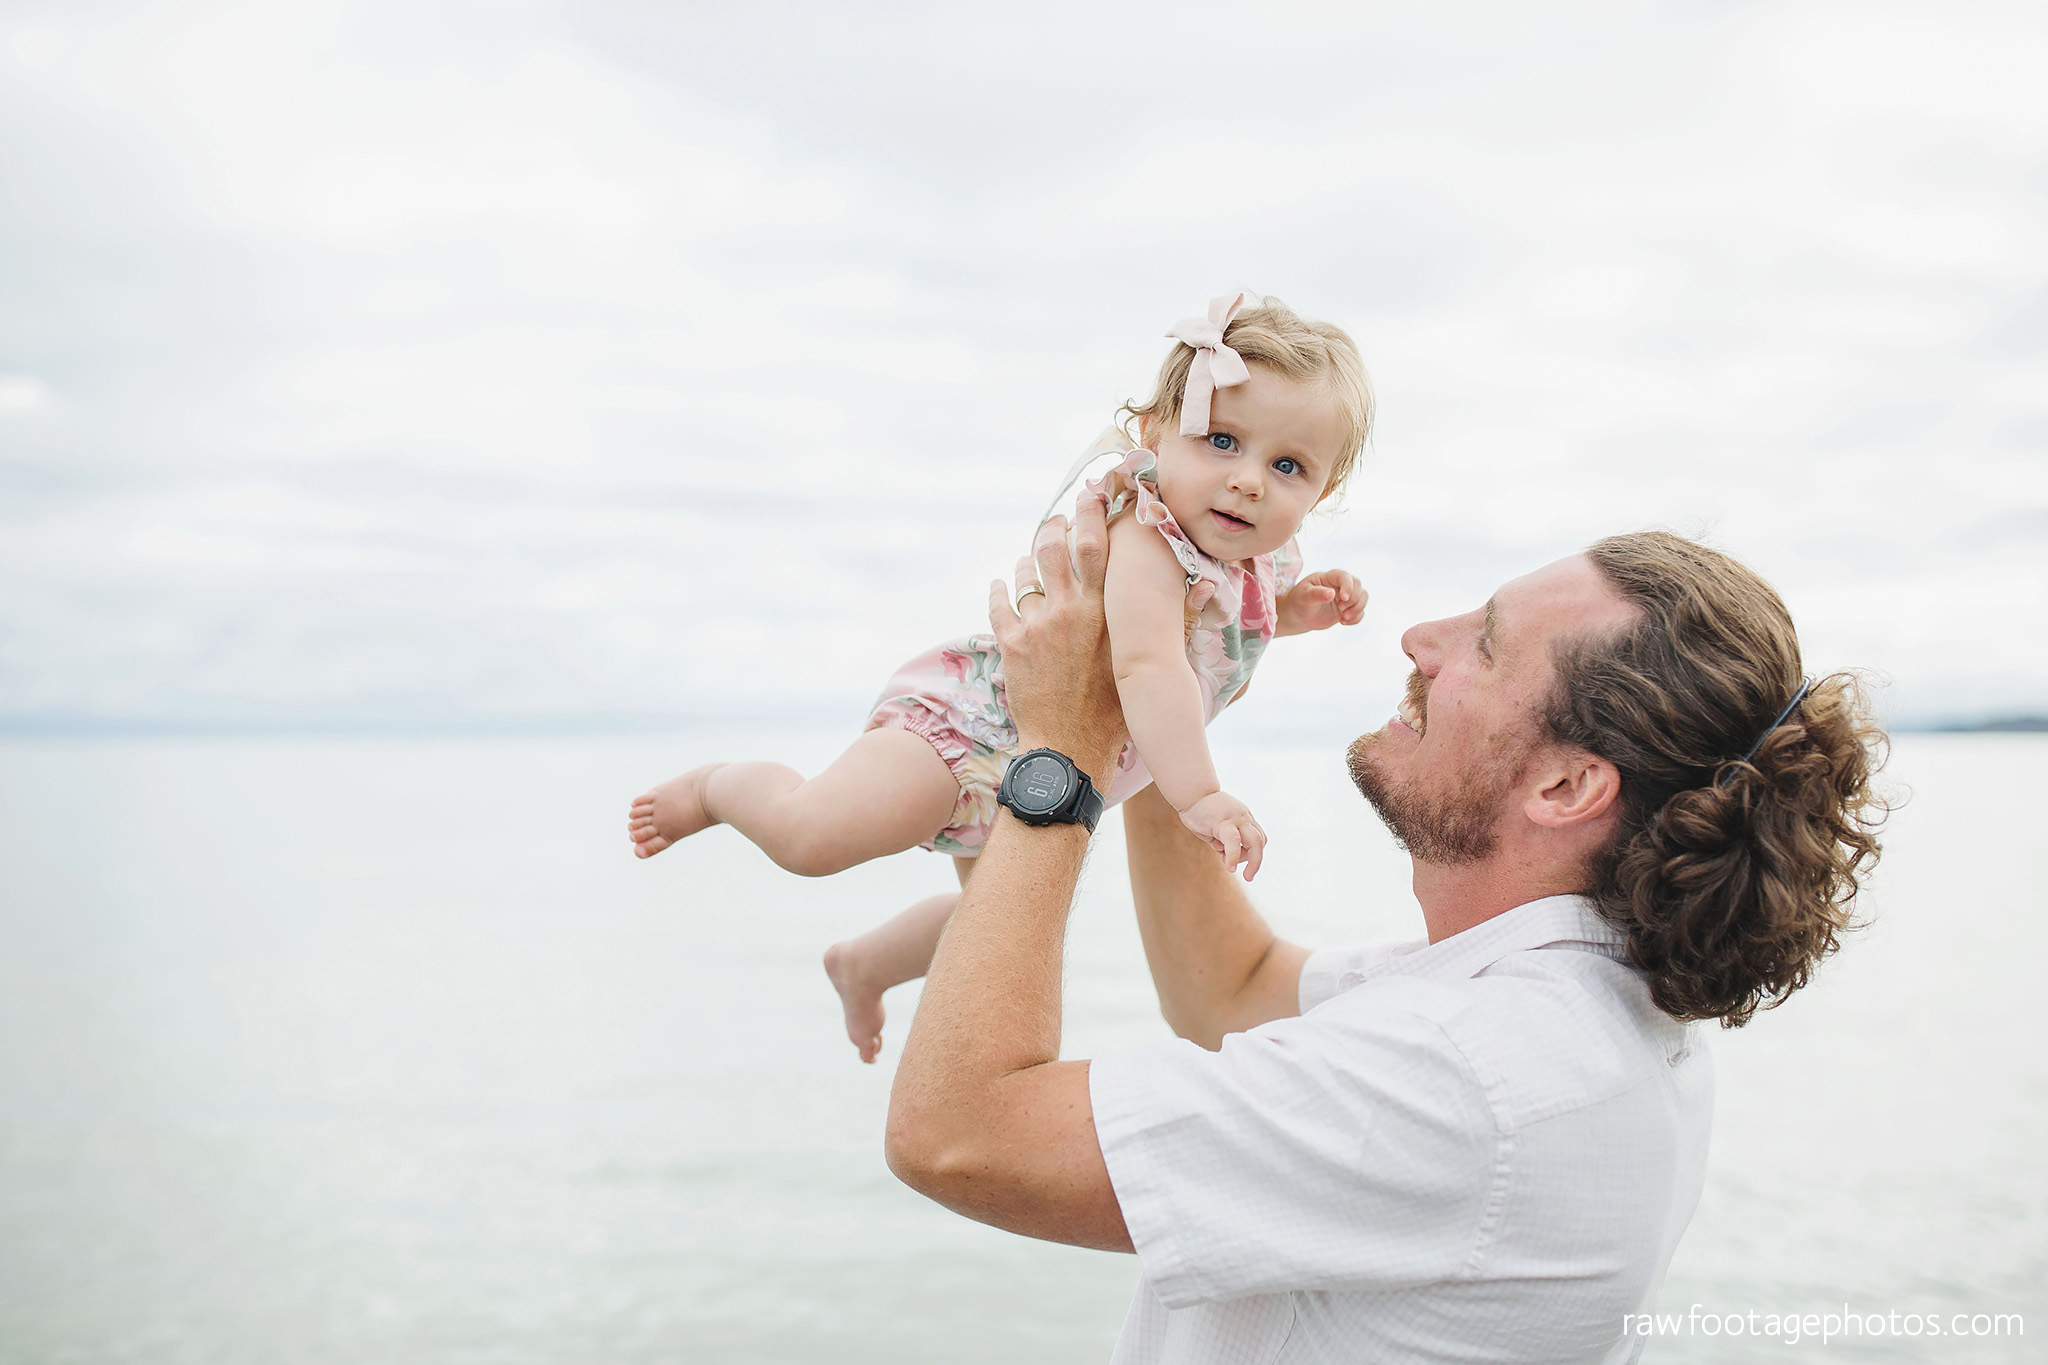 london_ontario_family_photographer-beach_minis-port_stanley_beach-raw_footage_photography051.jpg